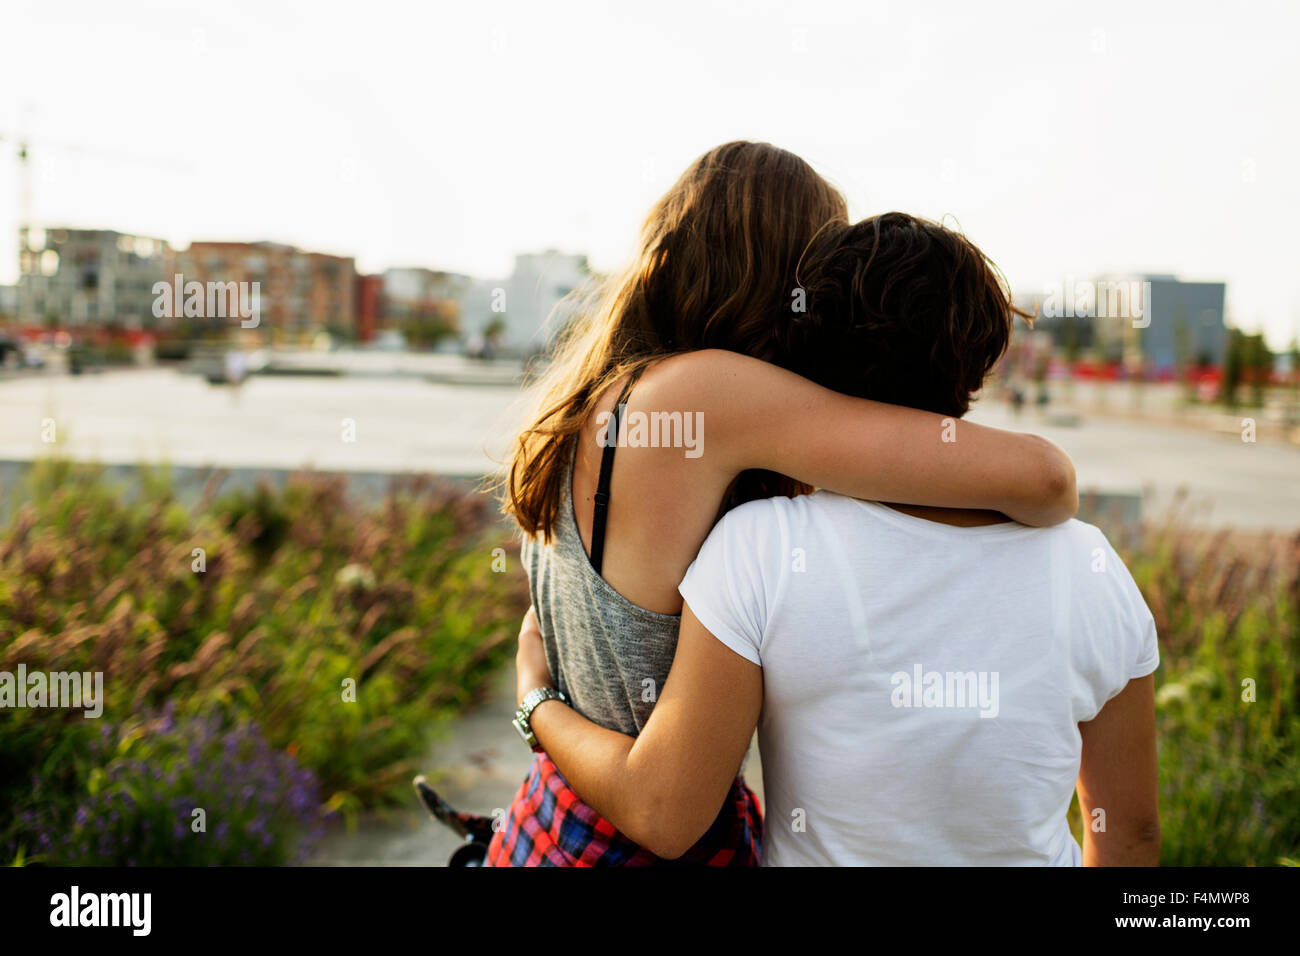 Rear view of female friends embracing at skateboard park - Stock Image